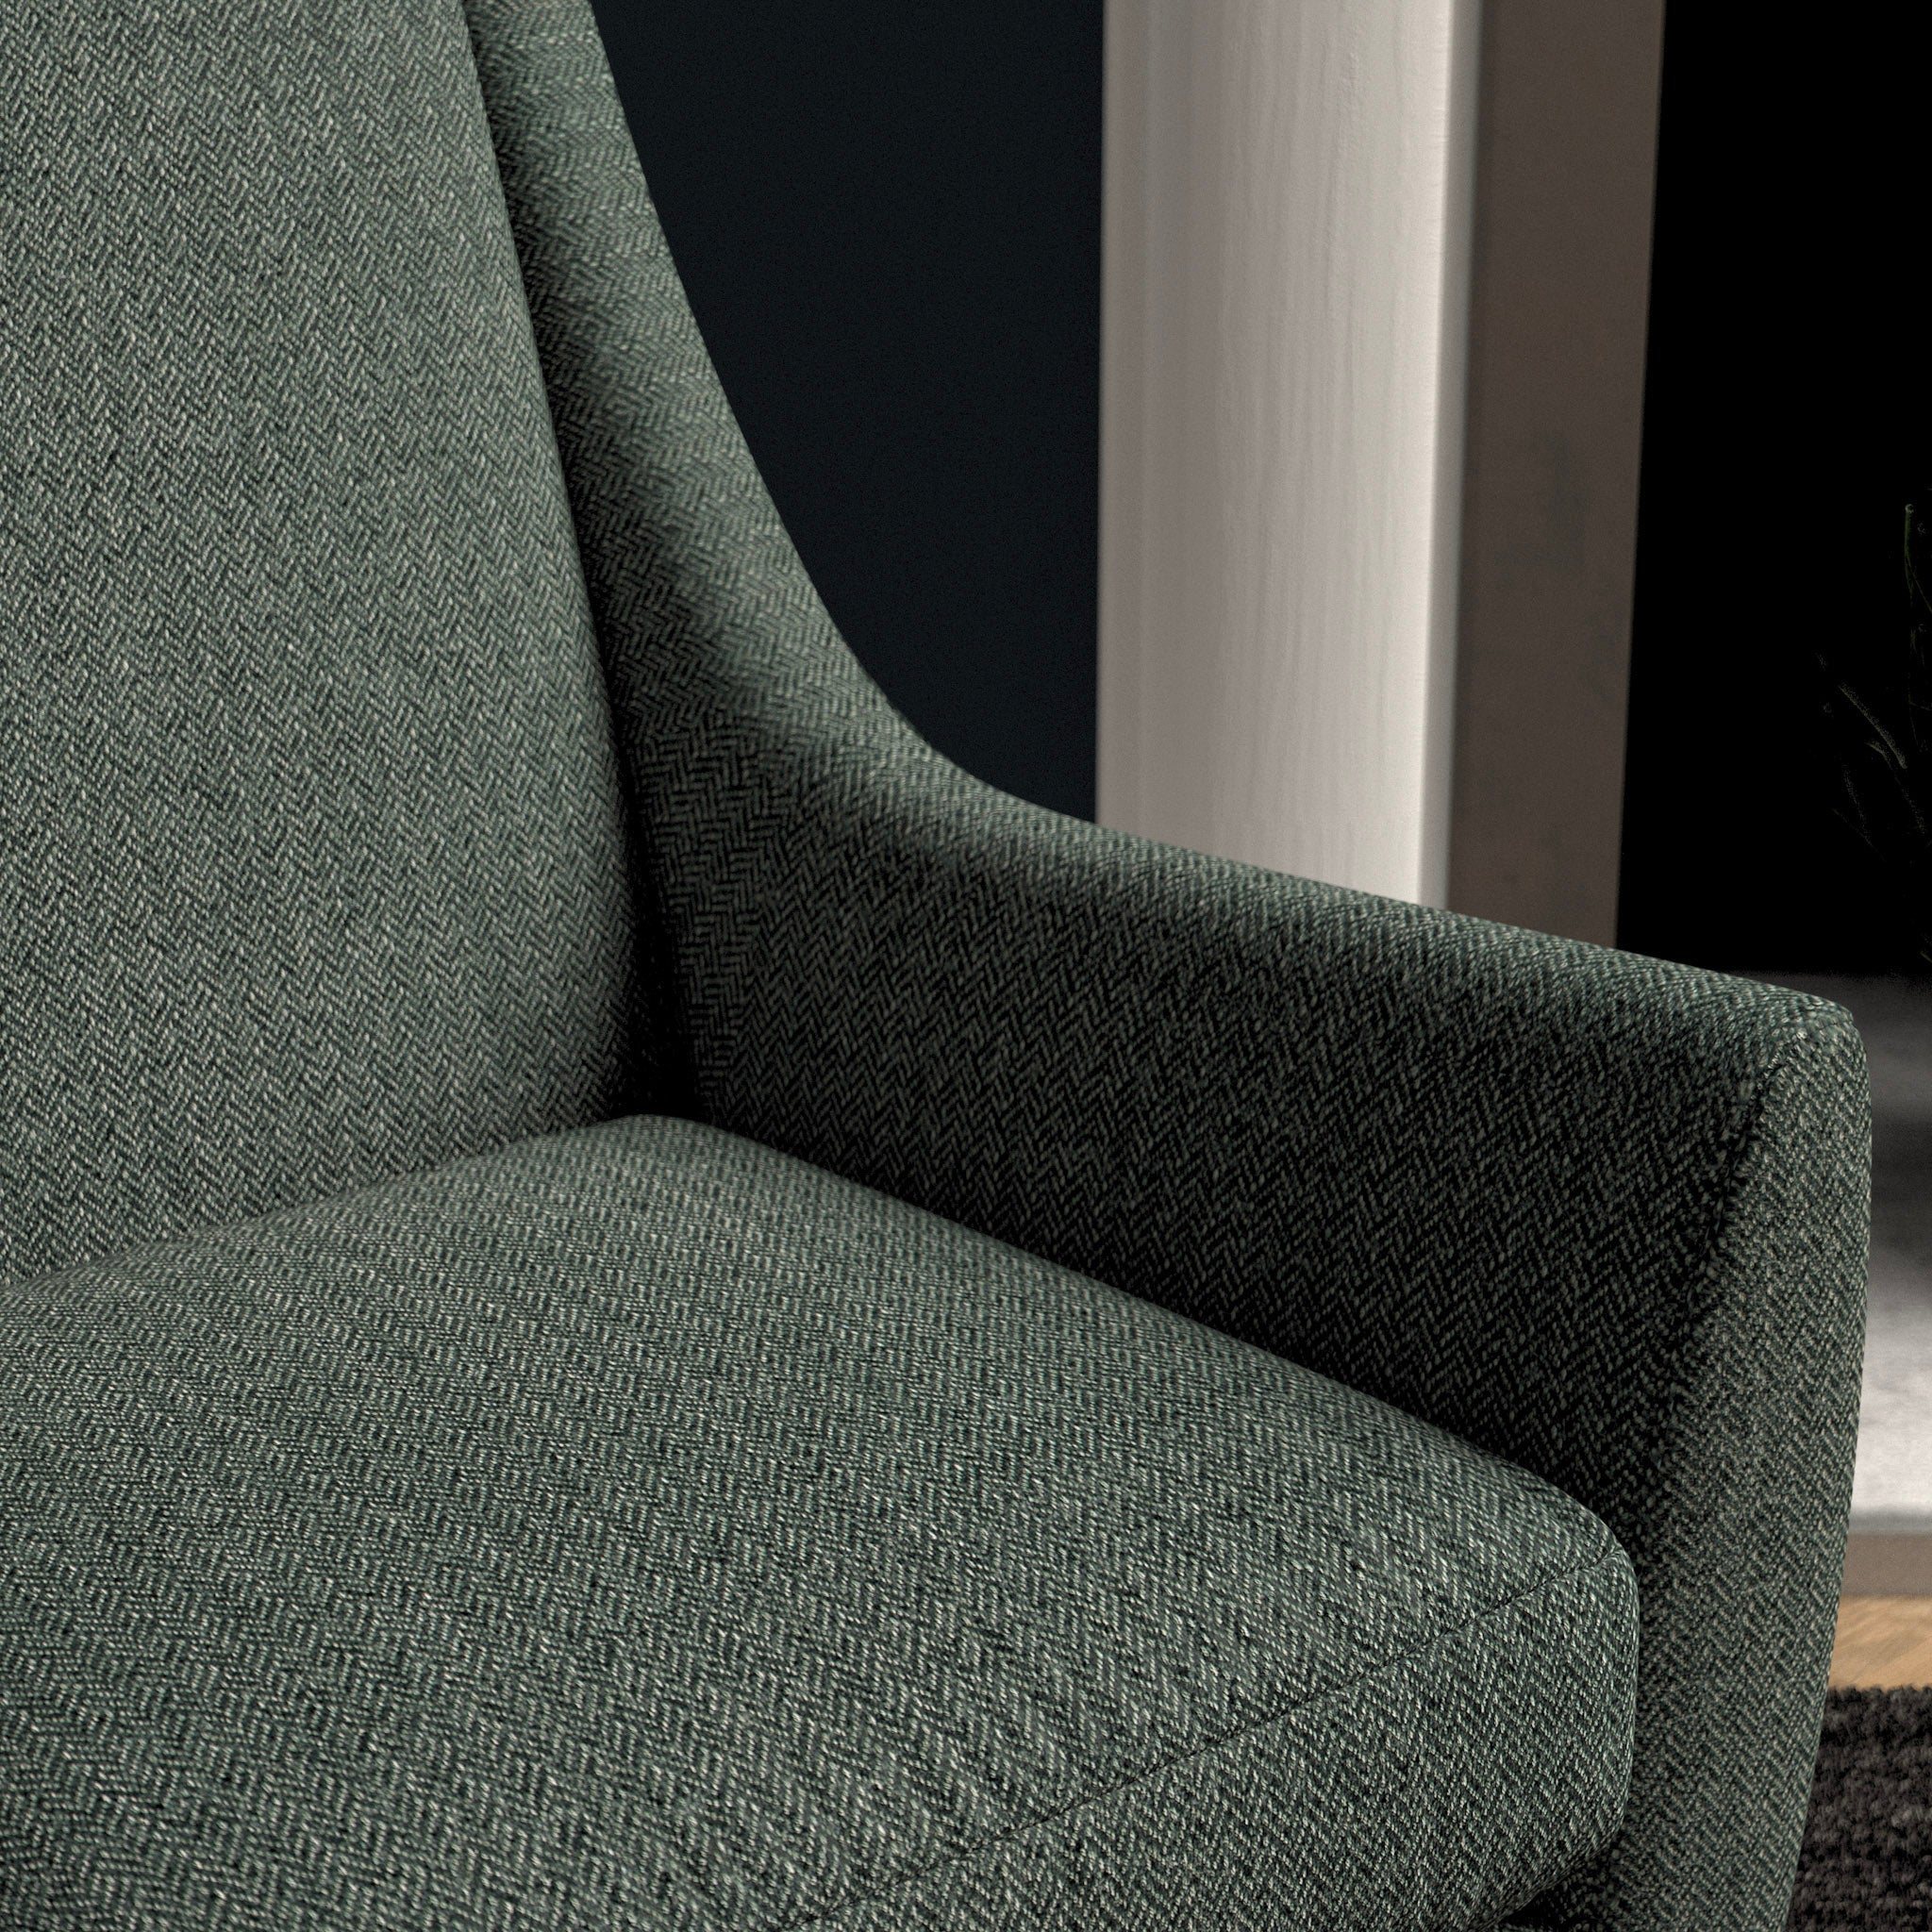 Chair upholstered in a dark blue herringbone wool weave upholstery fabric